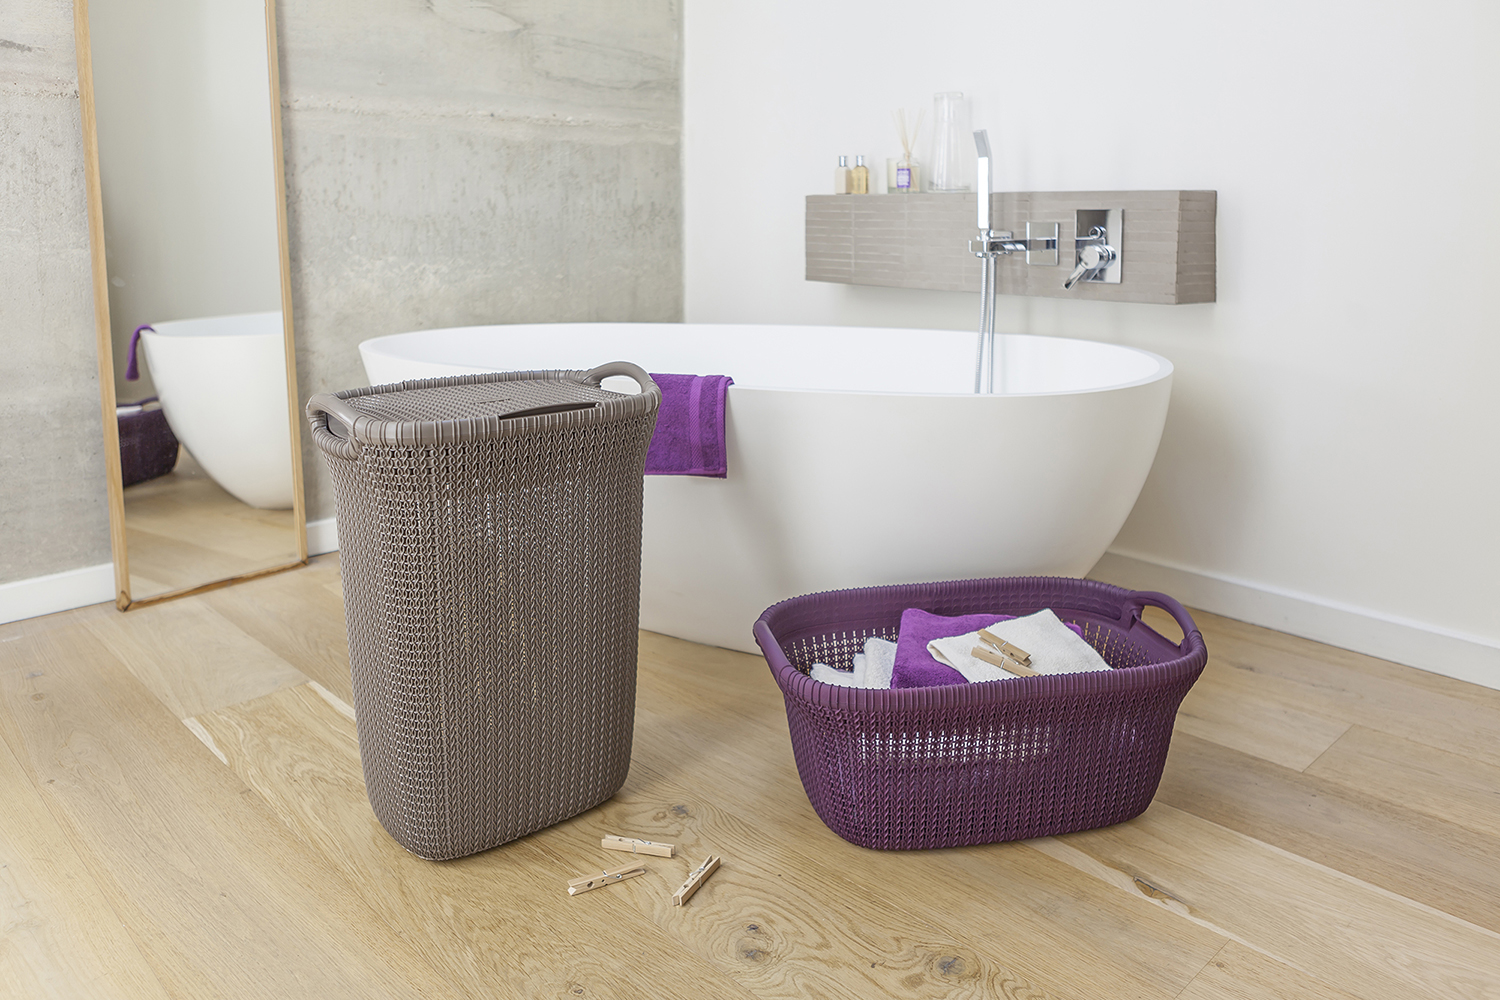 Curver- Knit Hamper and Laundry Basket